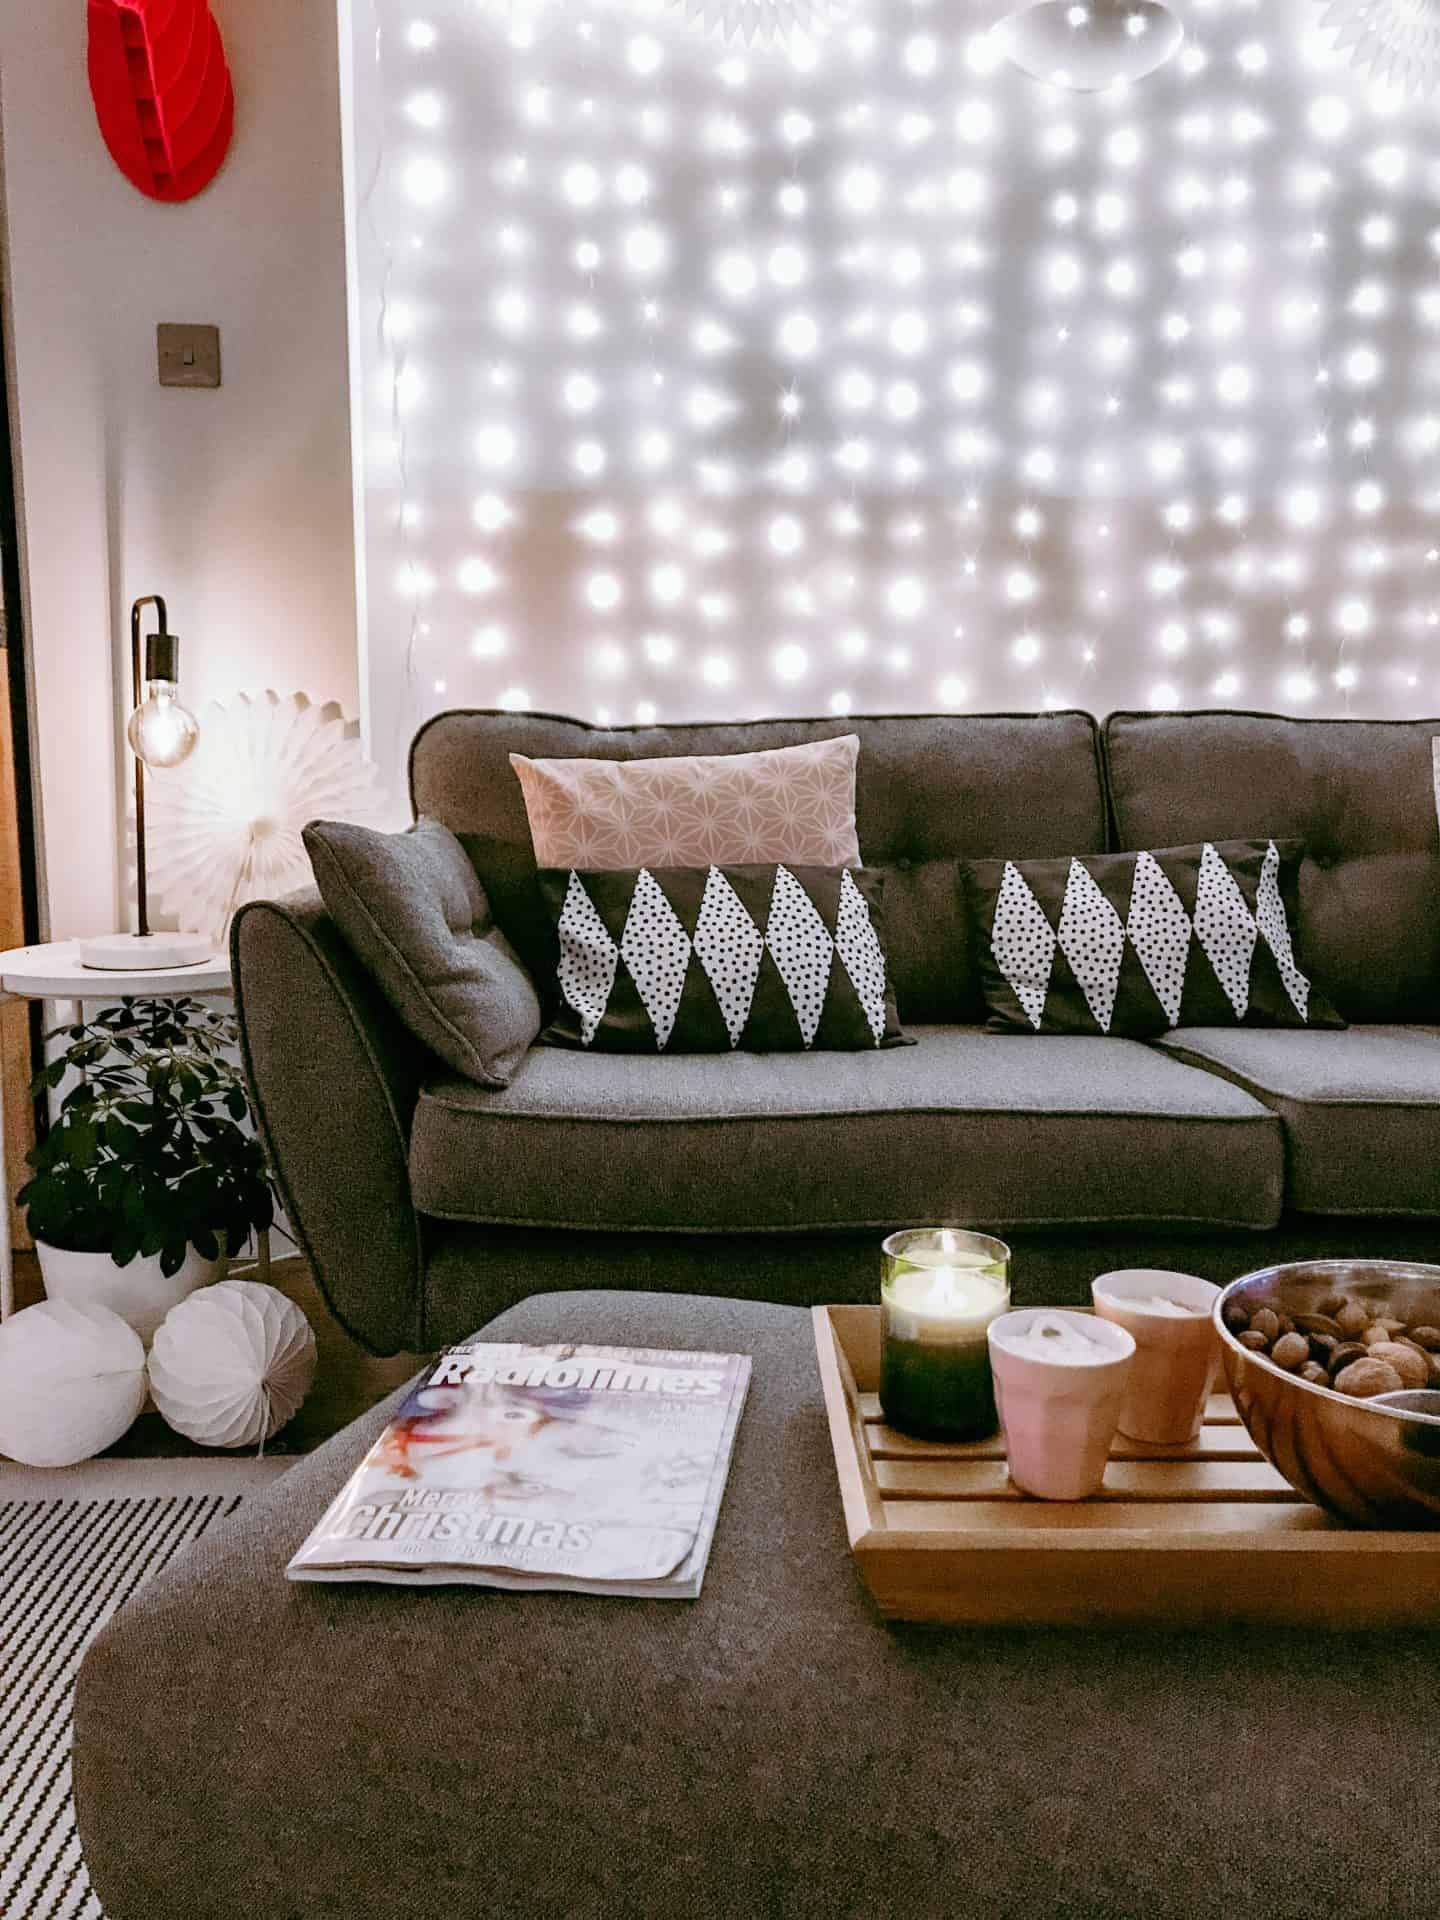 Hygge lounge with hot chocolate and a bowl of nuts and the Christmas Radio TImes